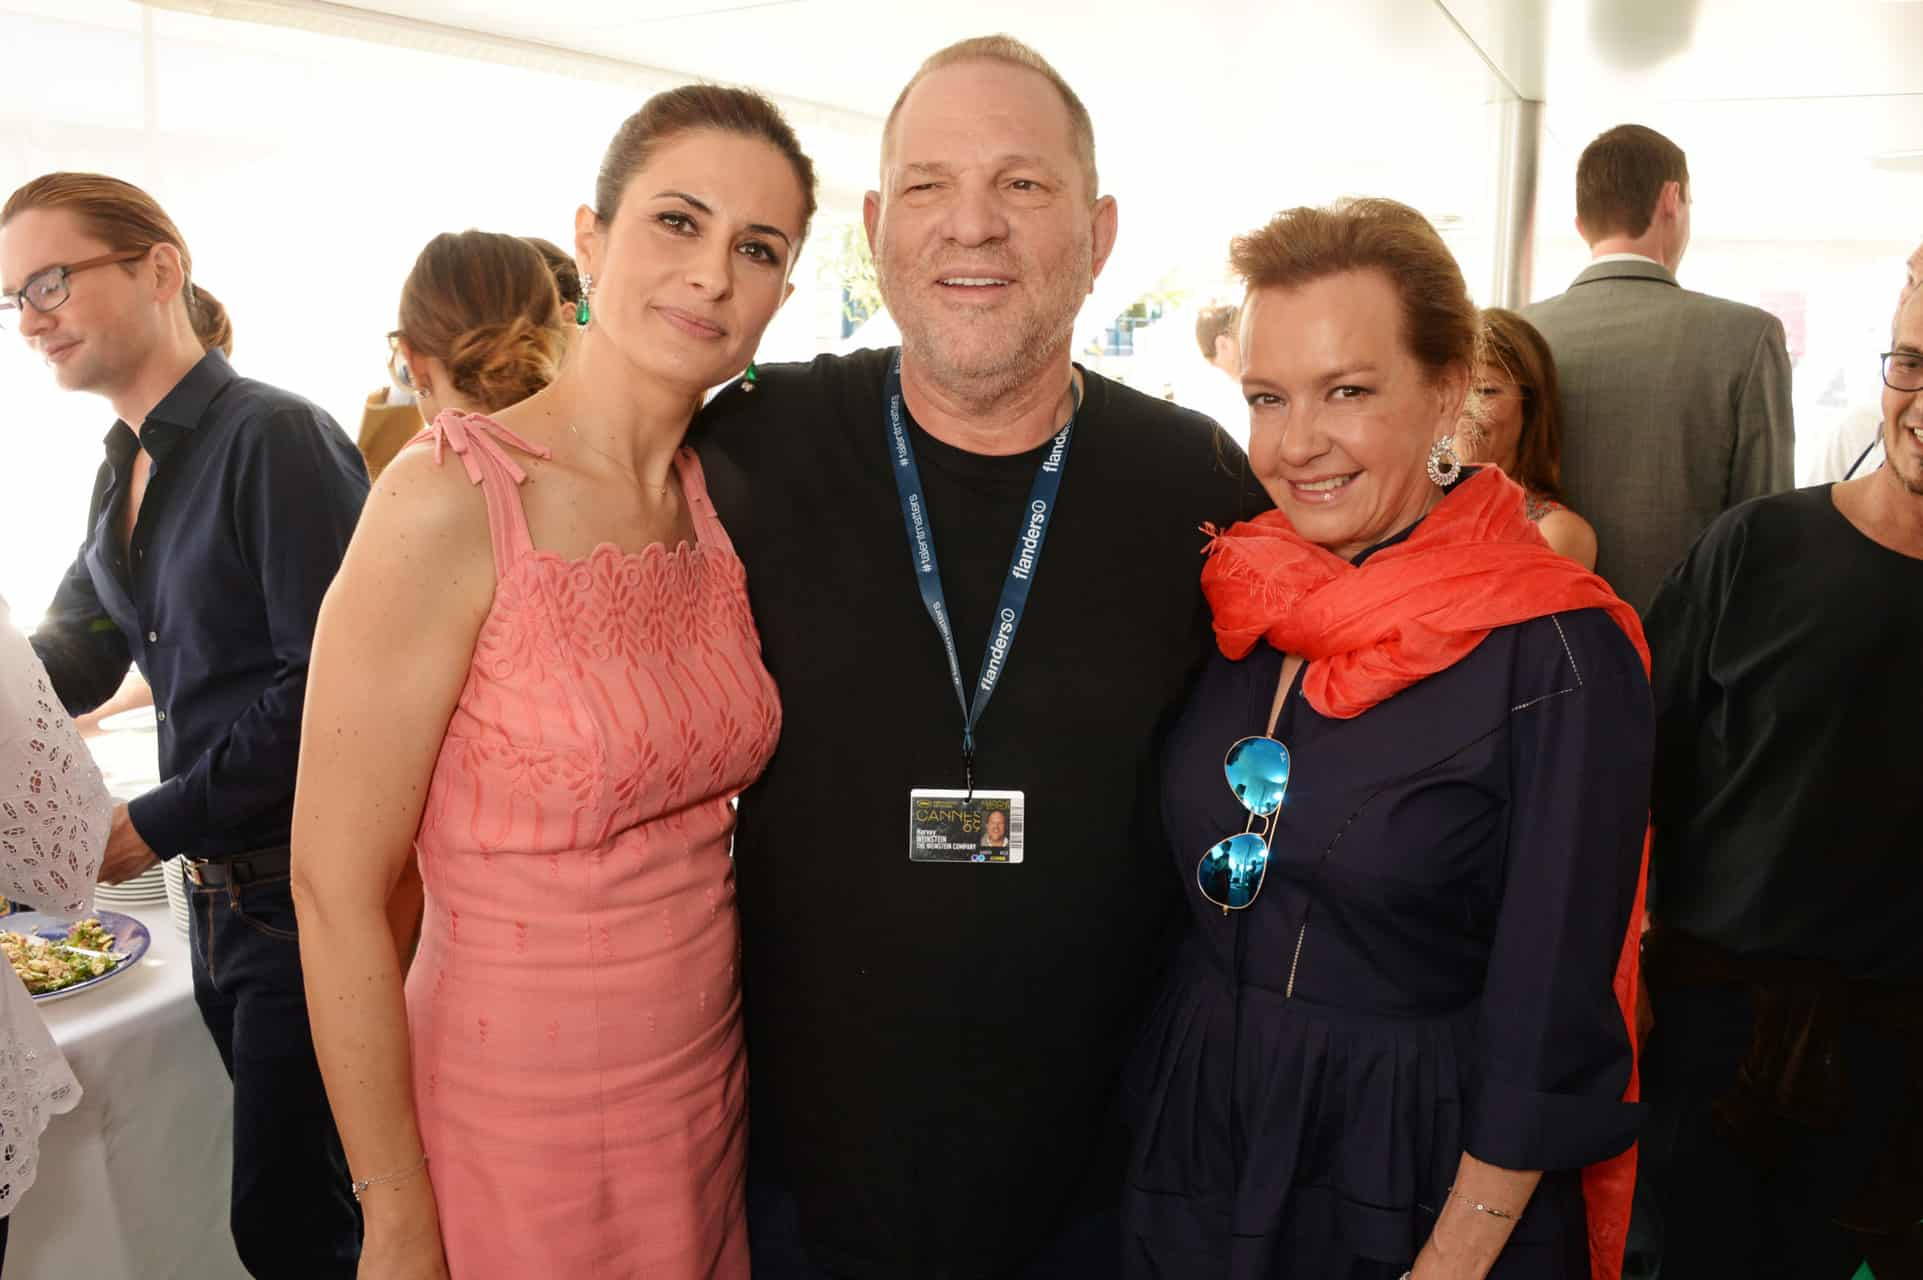 CANNES, FRANCE - MAY 14:  (L to R) Livia Firth, Harvey Weinstein and Caroline Scheufele, Artistic Director and Co-President of Chopard, attend a private lunch hosted by Colin Firth, Livia Firth and Chopard to celebrate the journey to sustainable luxury during the Cannes Film Festival 2016 aboard The Silver Reel on May 14, 2016 in Cannes, France.   Photo Credit: Dave Benett